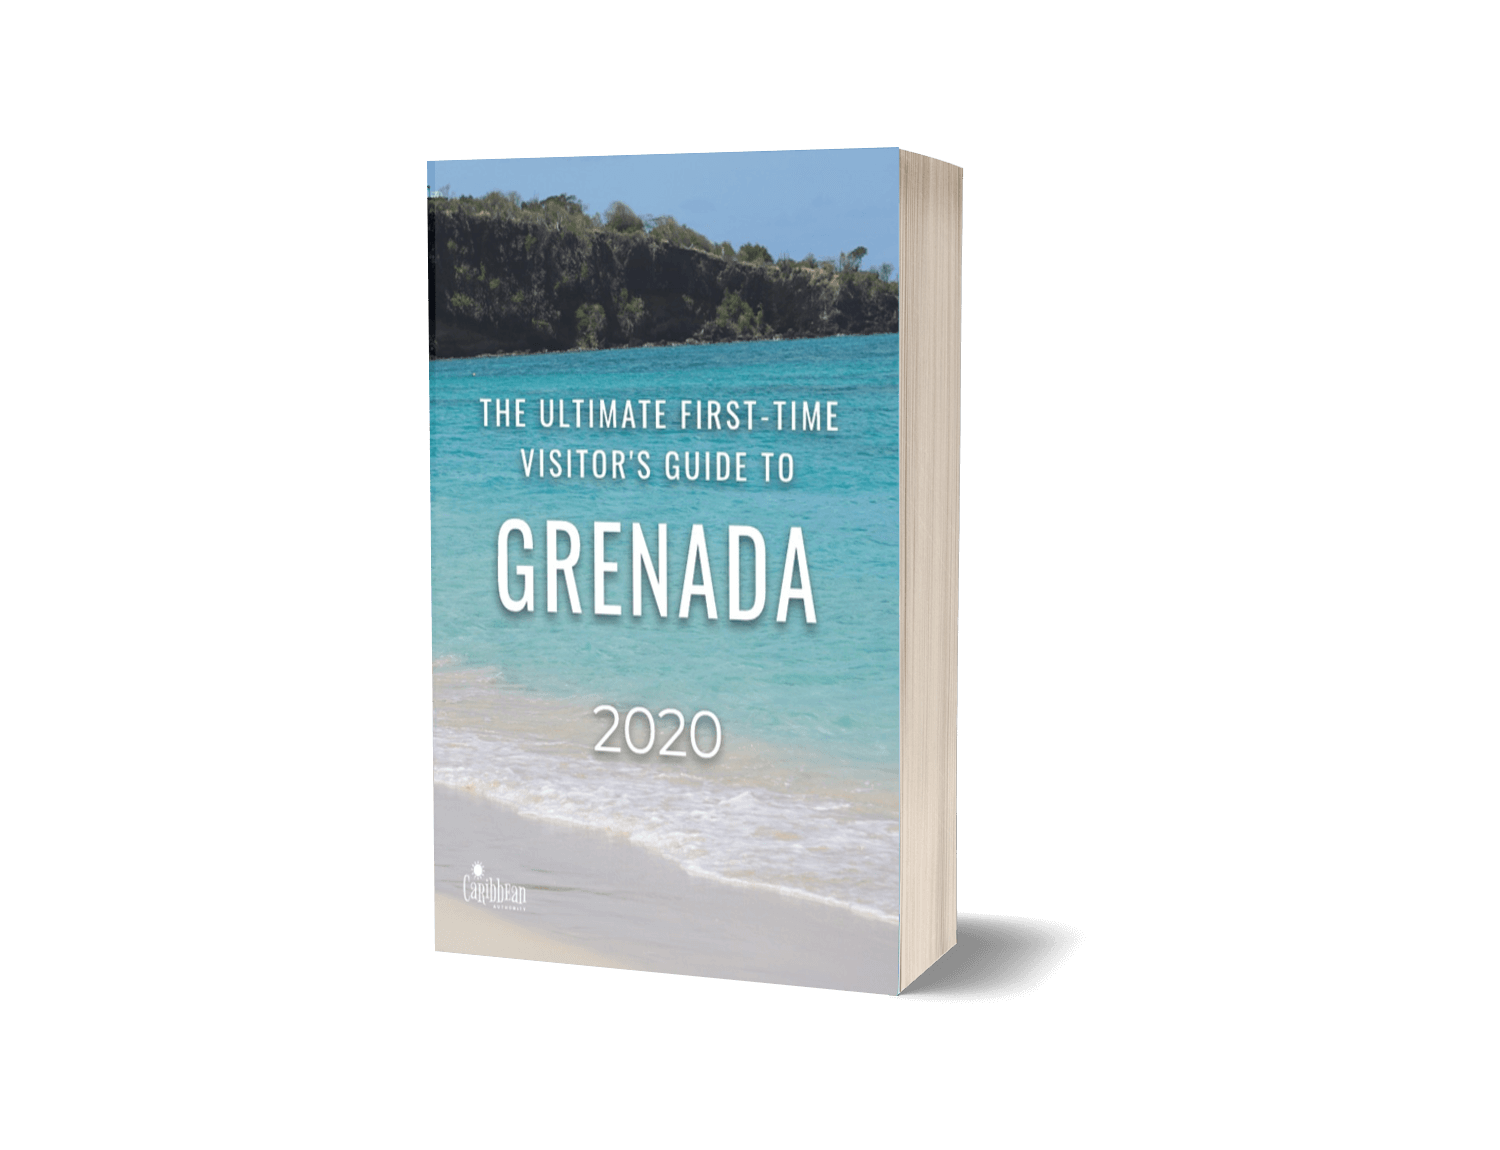 The Ultimate First Time Visitor's Guide to Grenada